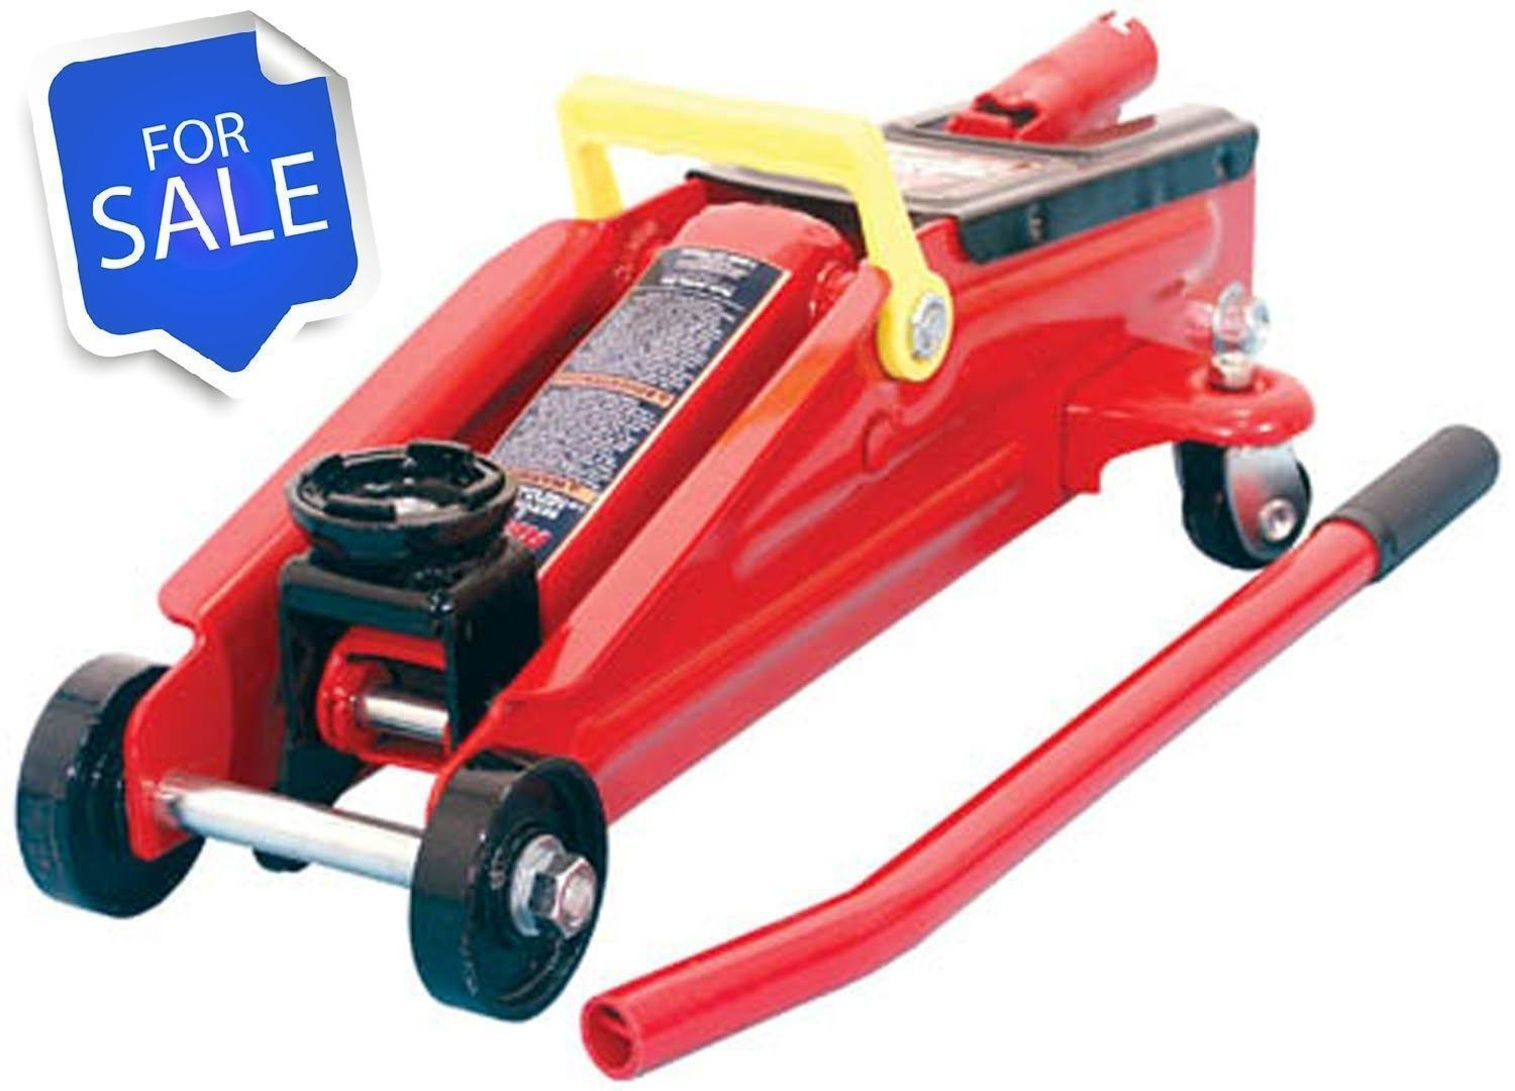 Torin Big Red Hydraulic Trolley Floor Jack 2 Ton Capacity